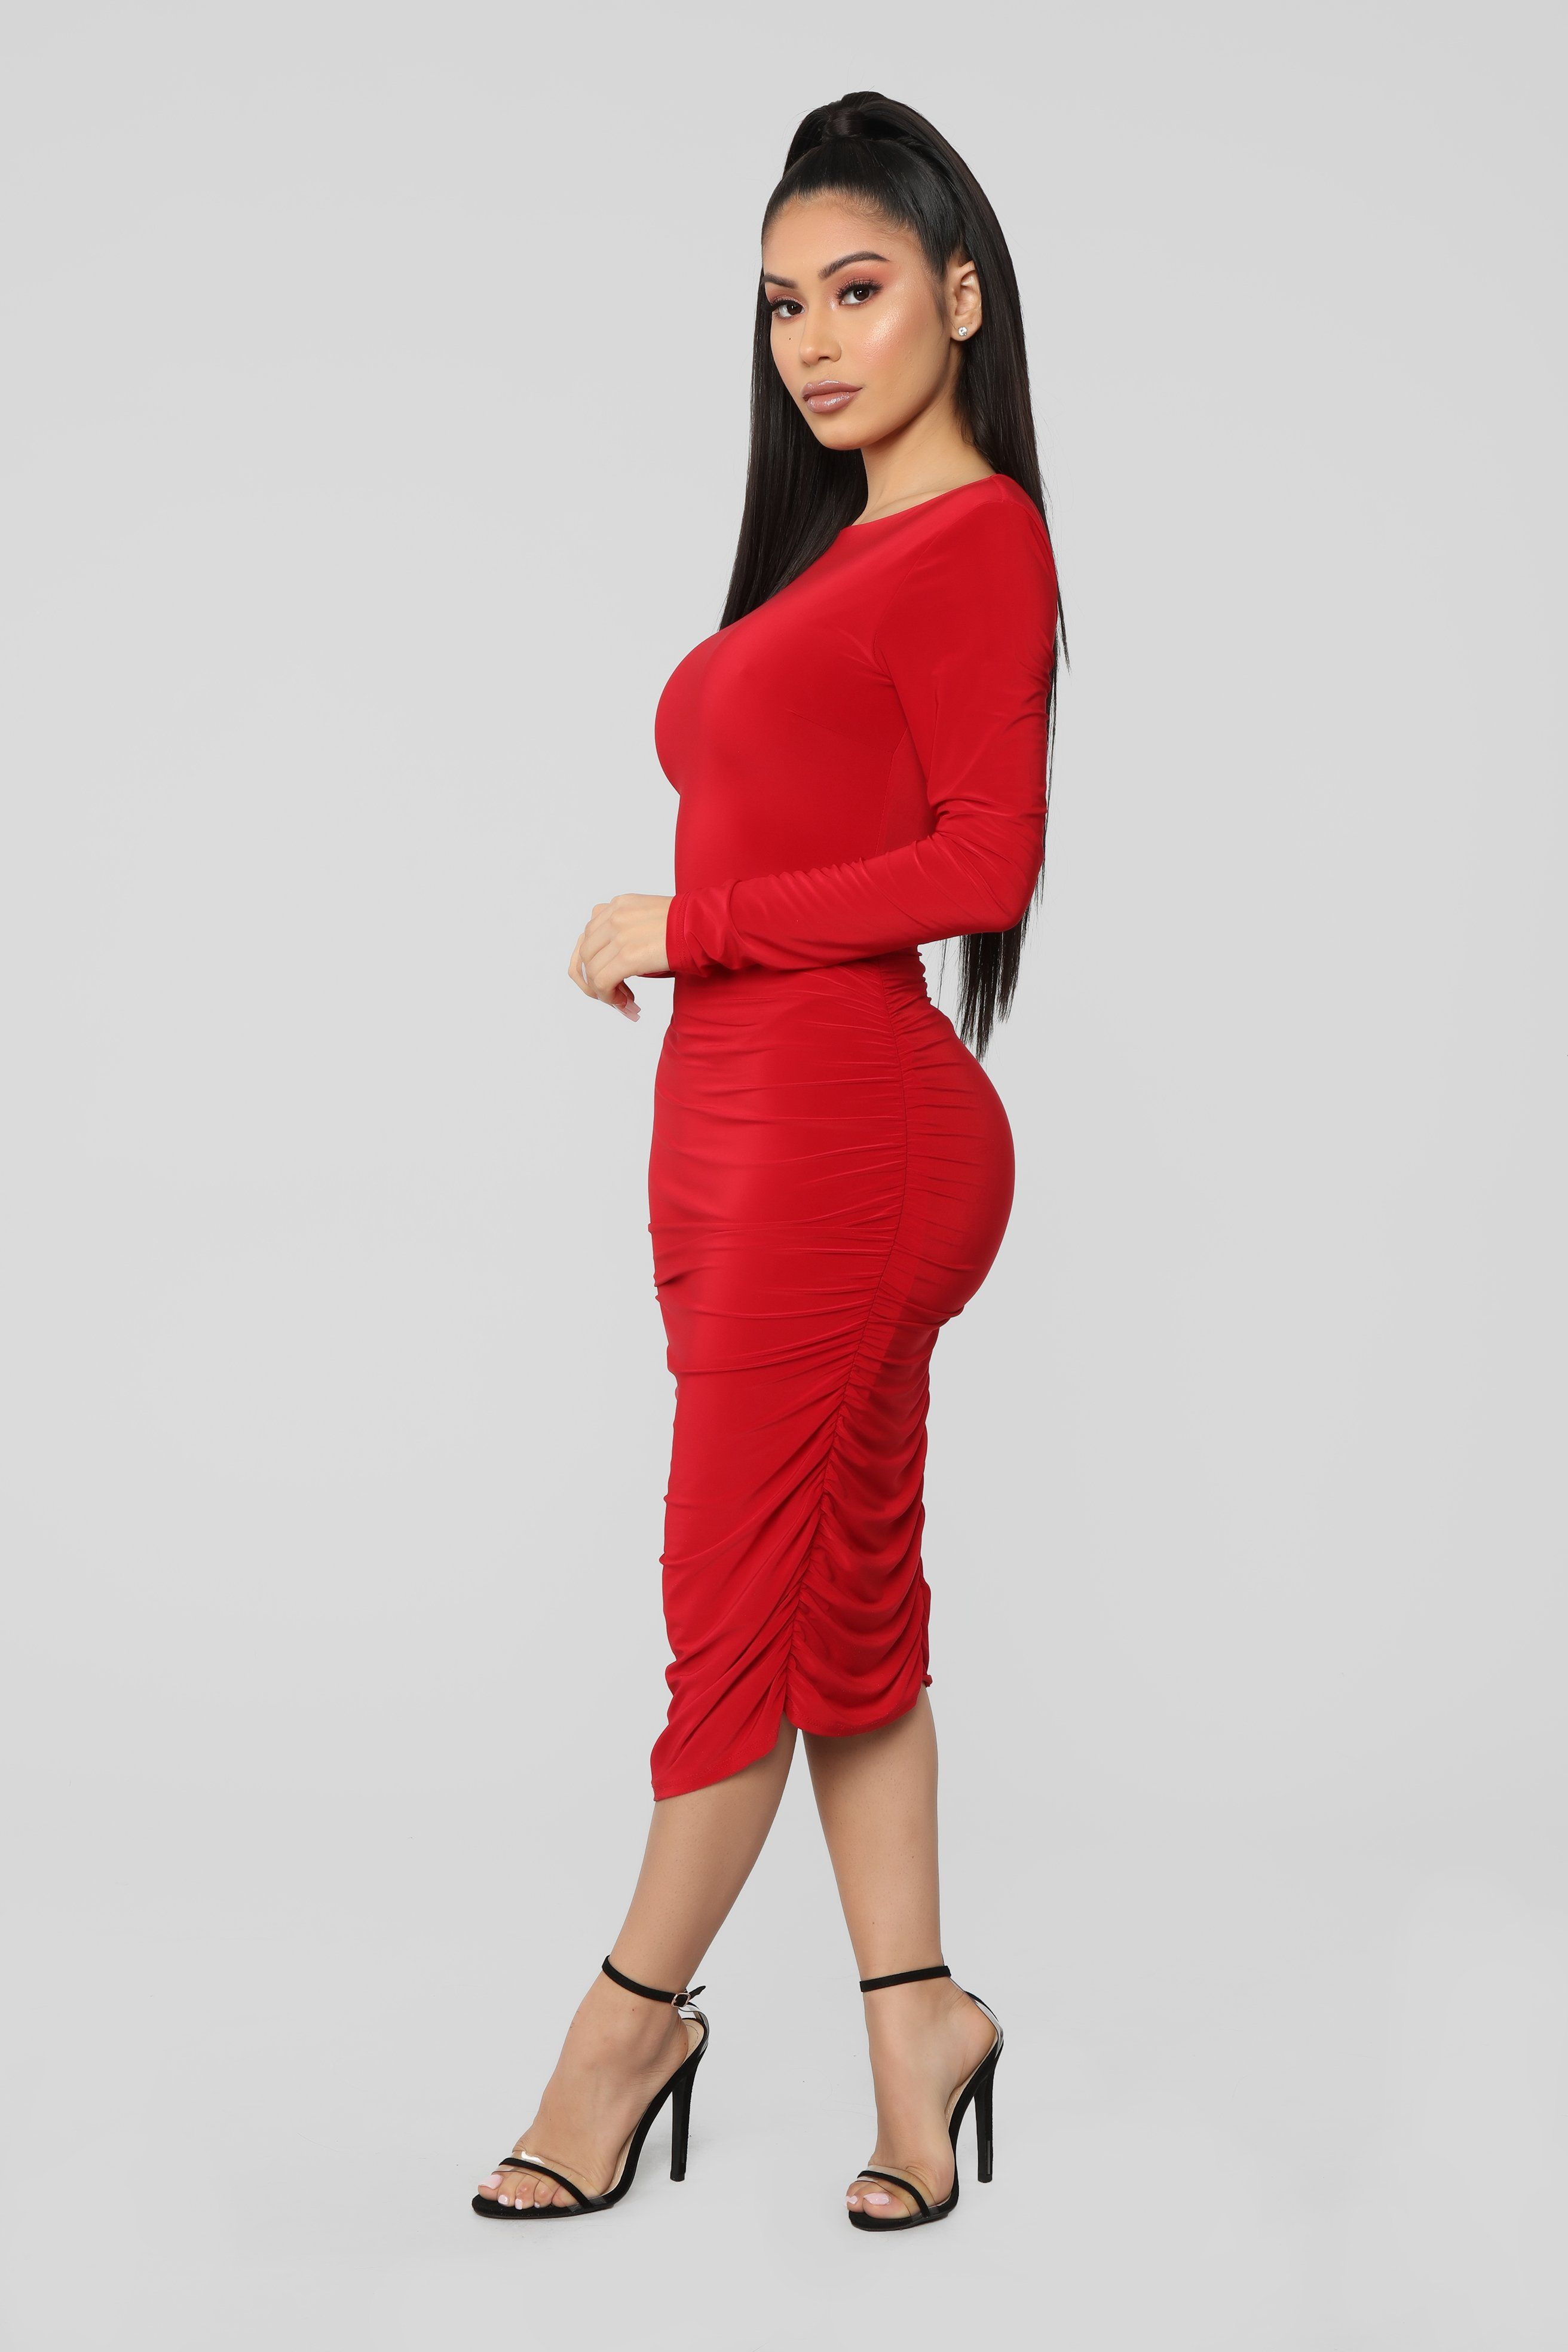 Pure Envy Ruched Midi Dress Red Red Dress Sleeves Red Midi Dress Long Sleeve Dress Outfit [ 3936 x 2624 Pixel ]